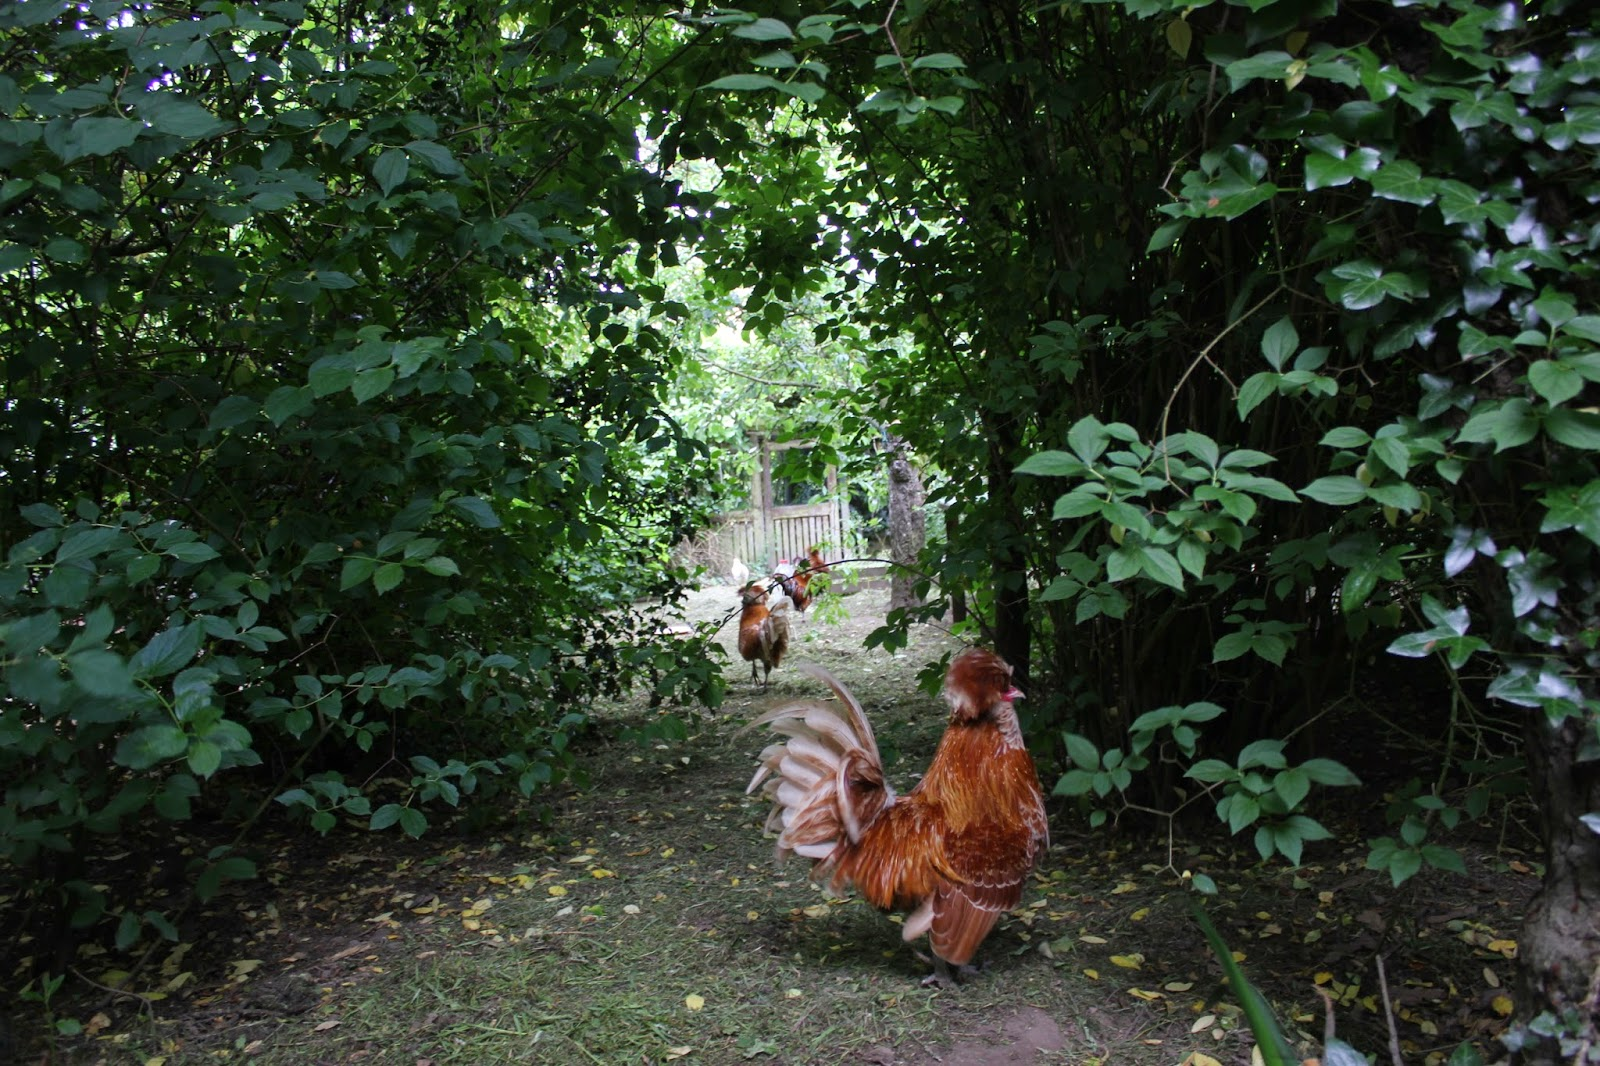 Polish chamois roosters in a forest garden